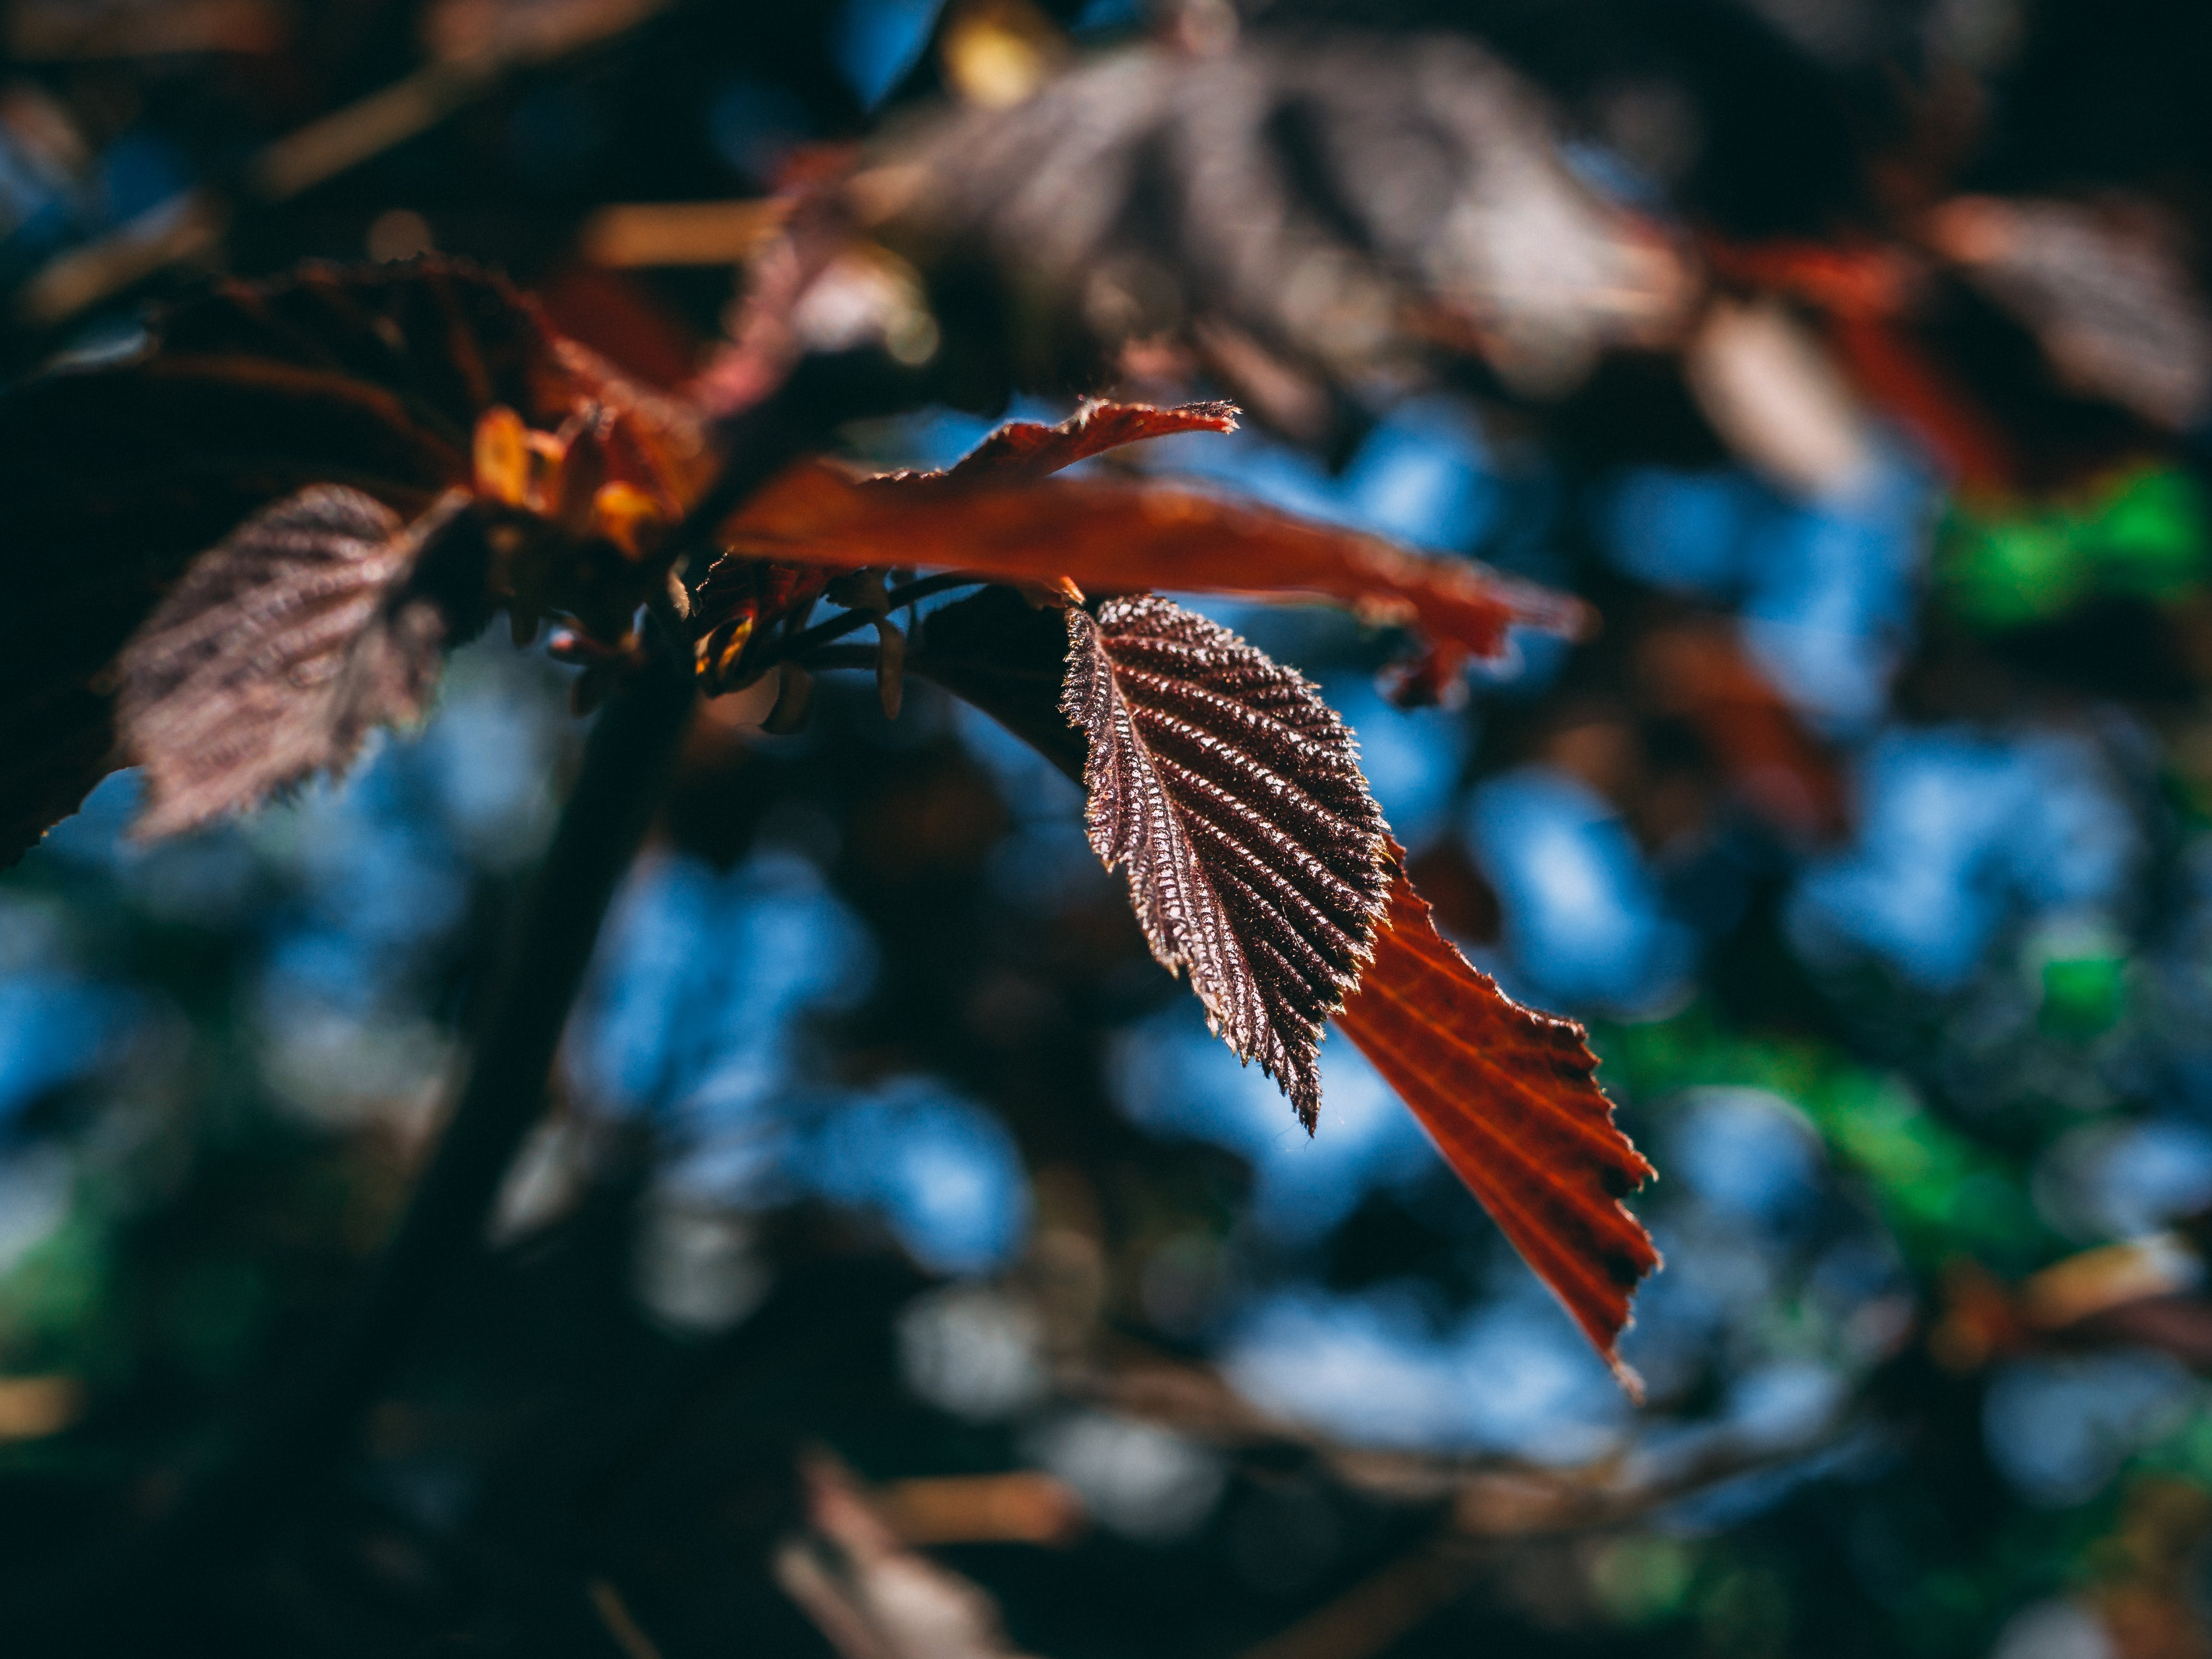 Close-Up Photography of Leaves